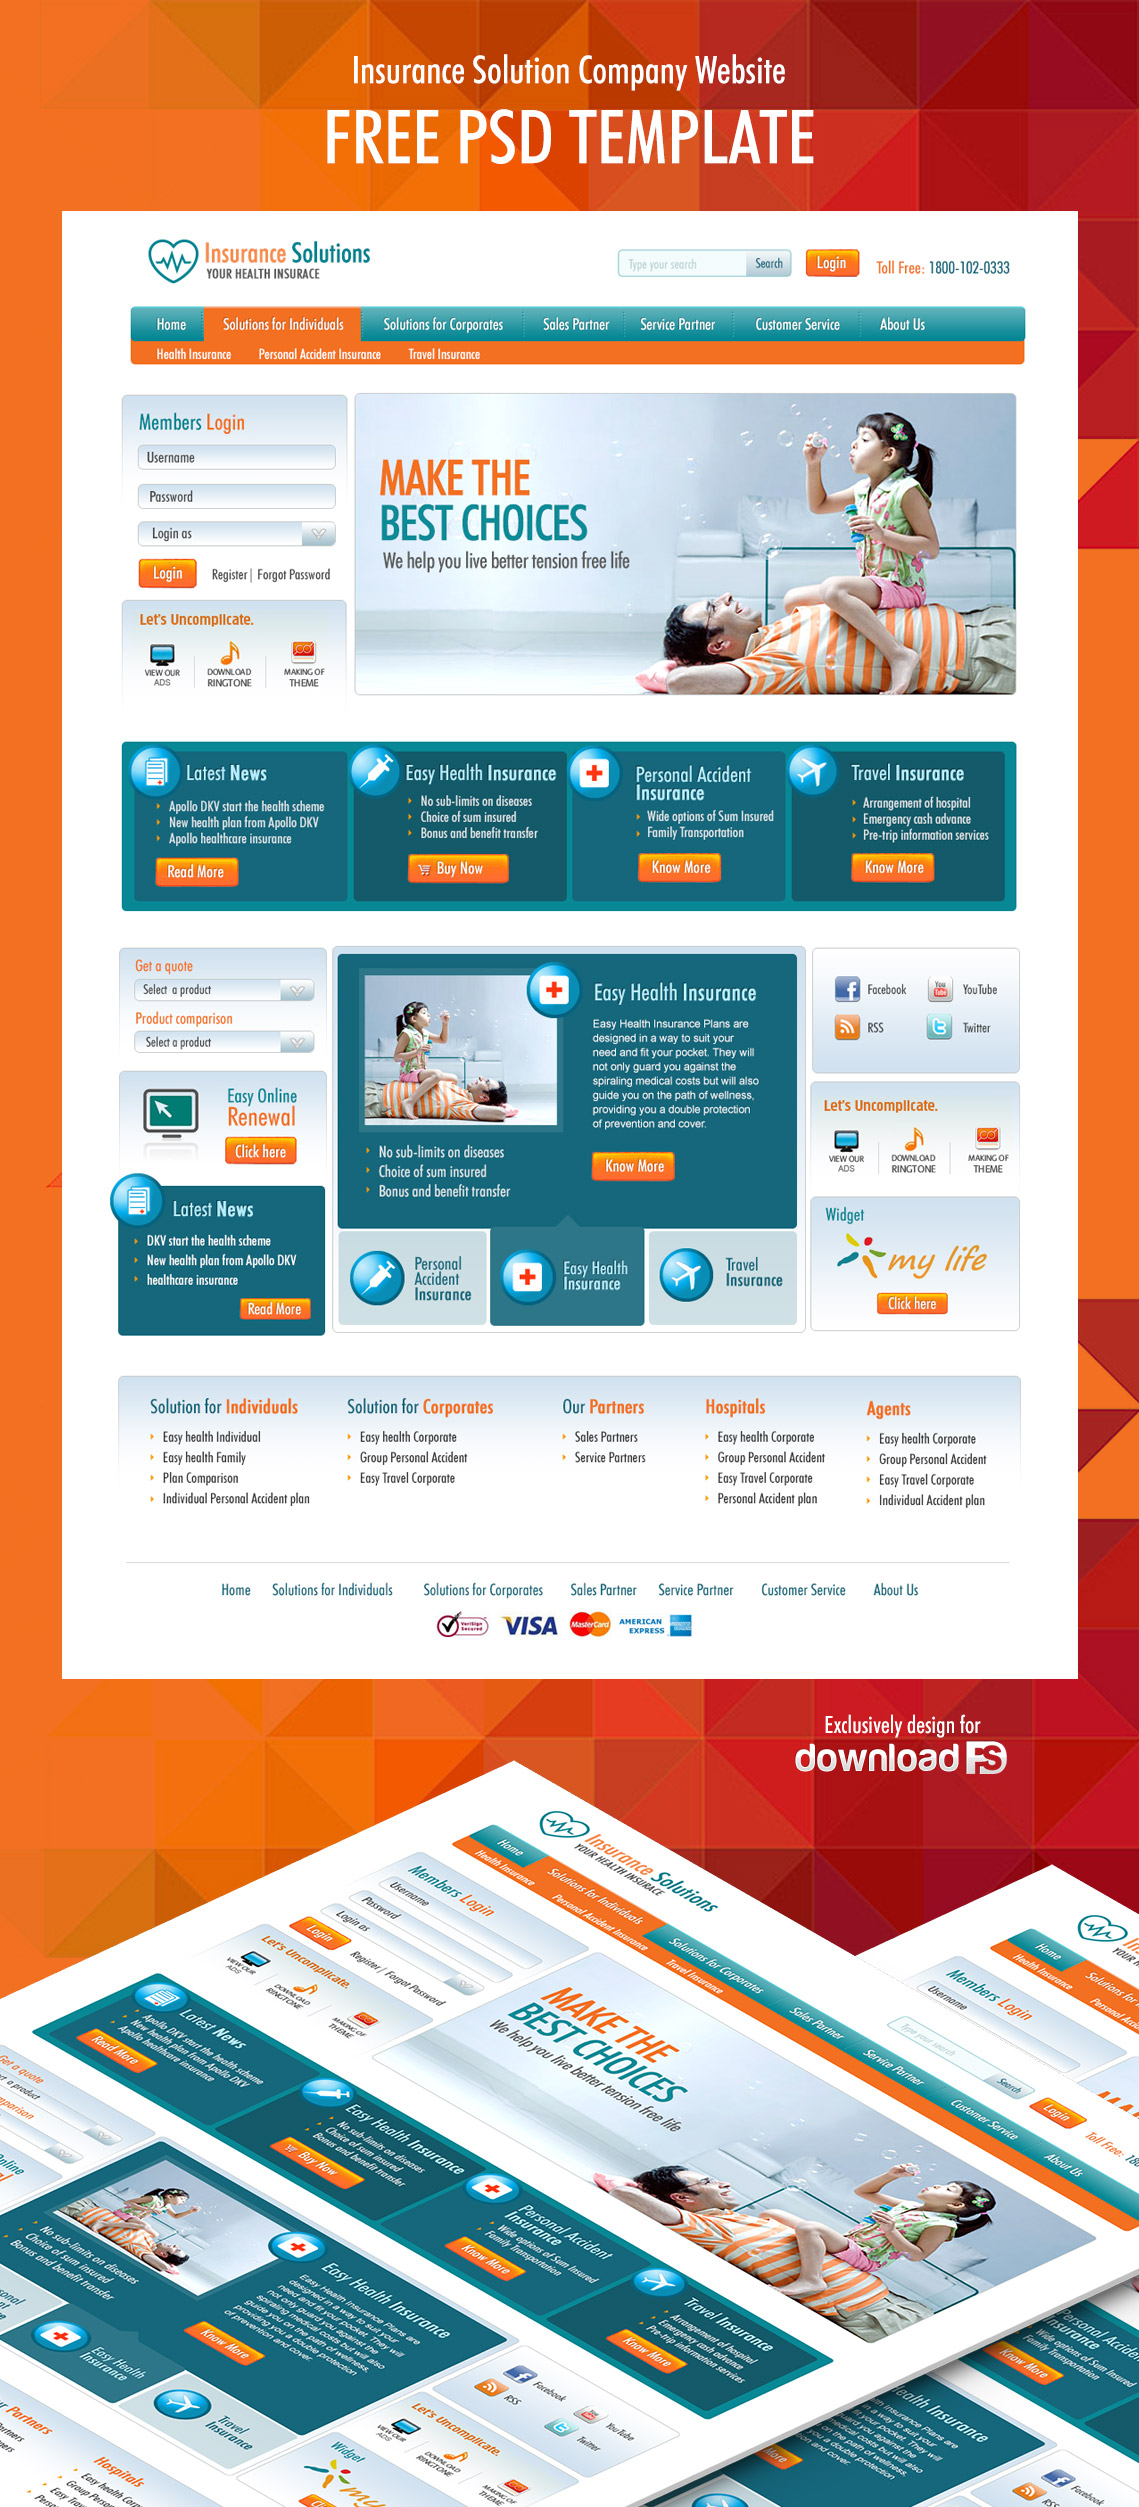 insurance-solution-company-website-free-psd-template